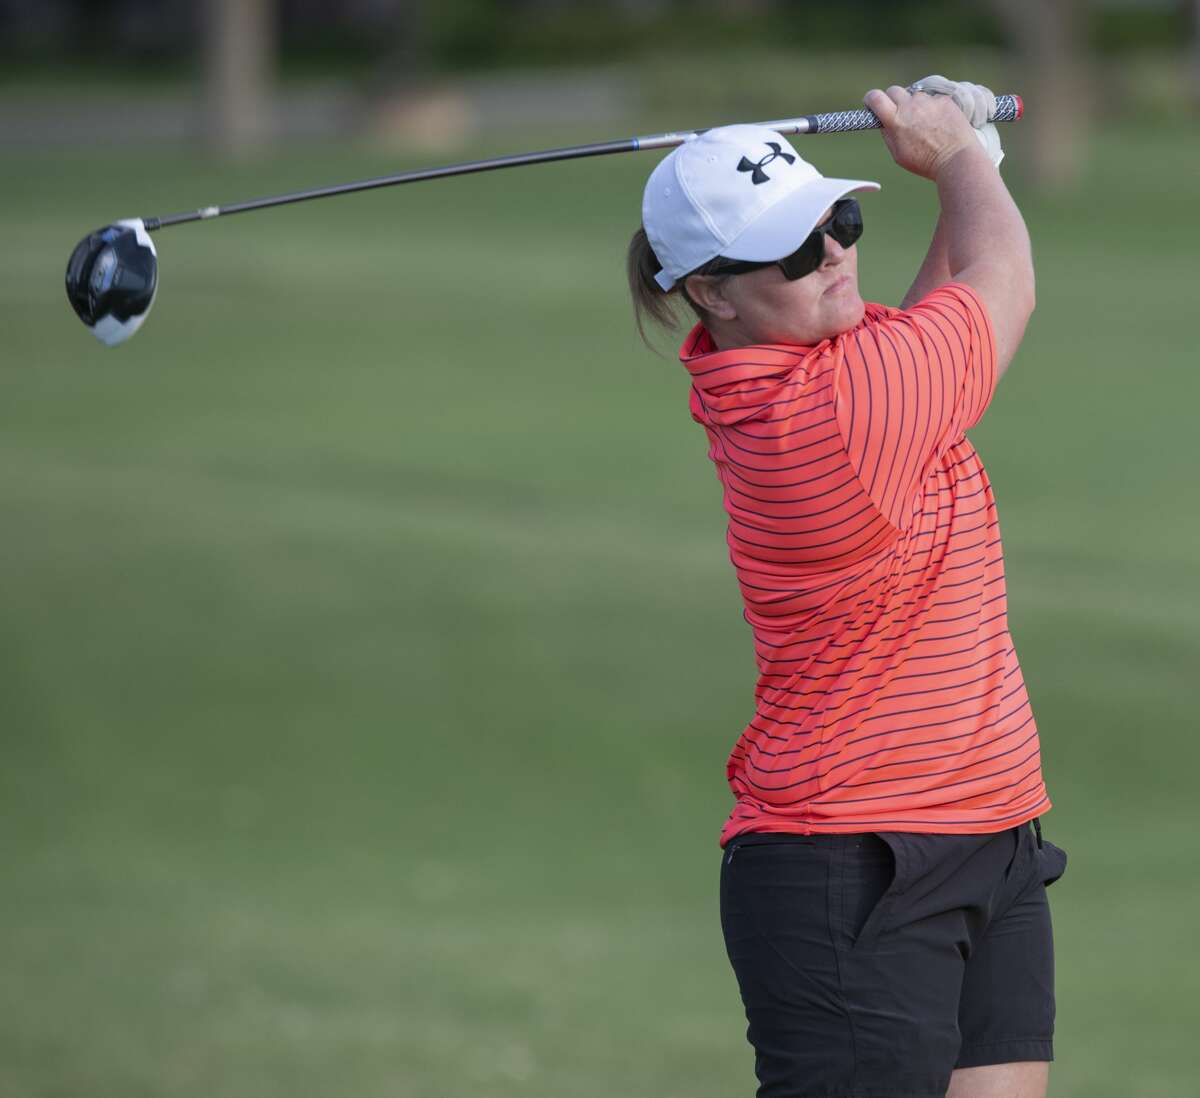 Brooke Schlemeyer follows her shot 07/13/2020 during the qualifying round for the Midland Women's City Golf Tournament at Midland Country Club. Tim Fischer/Reporter-Telegram